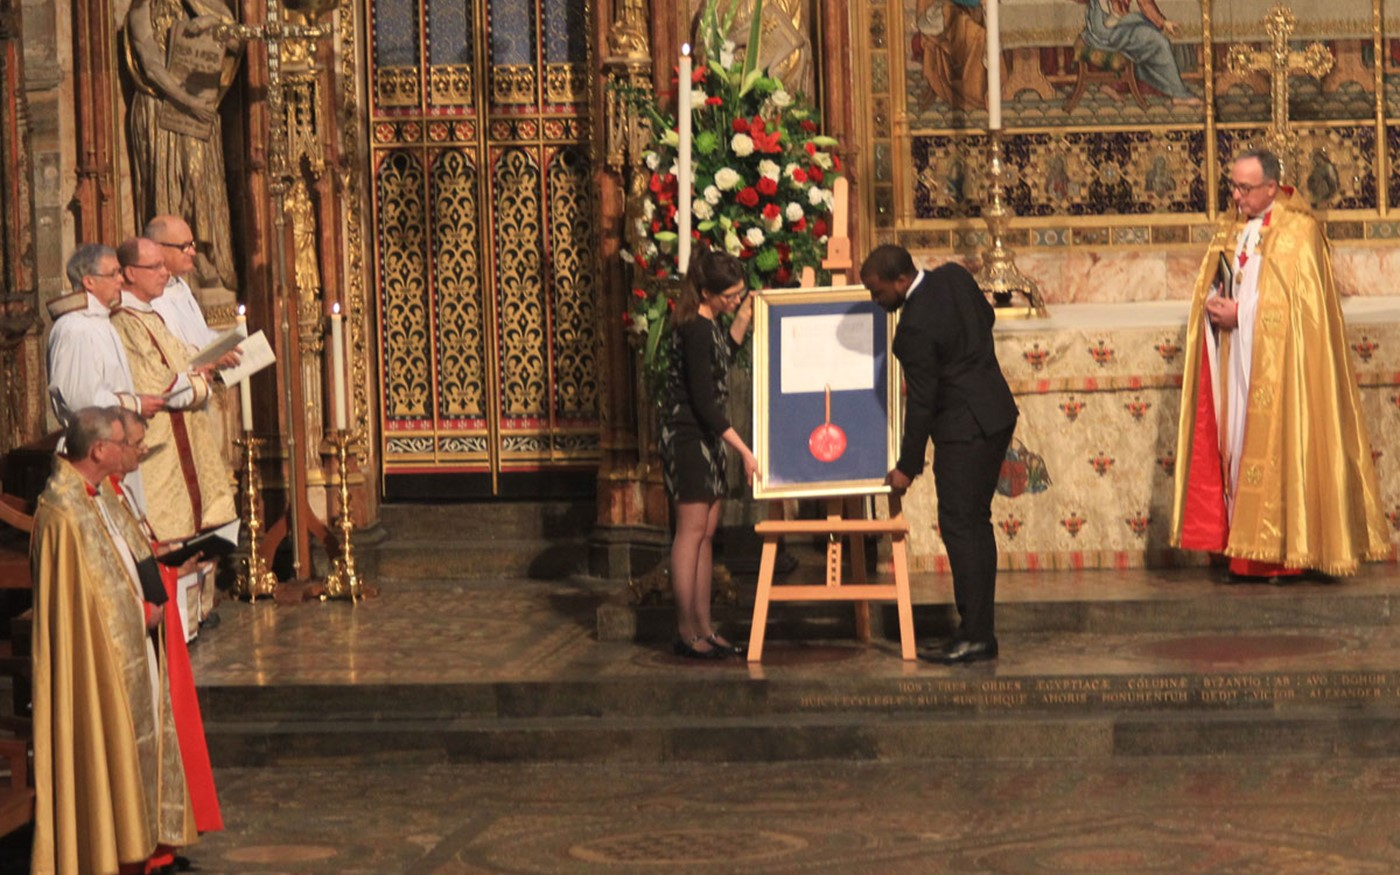 The Royal Charter of the Duke of Edinburgh's Award is placed on the High Altar